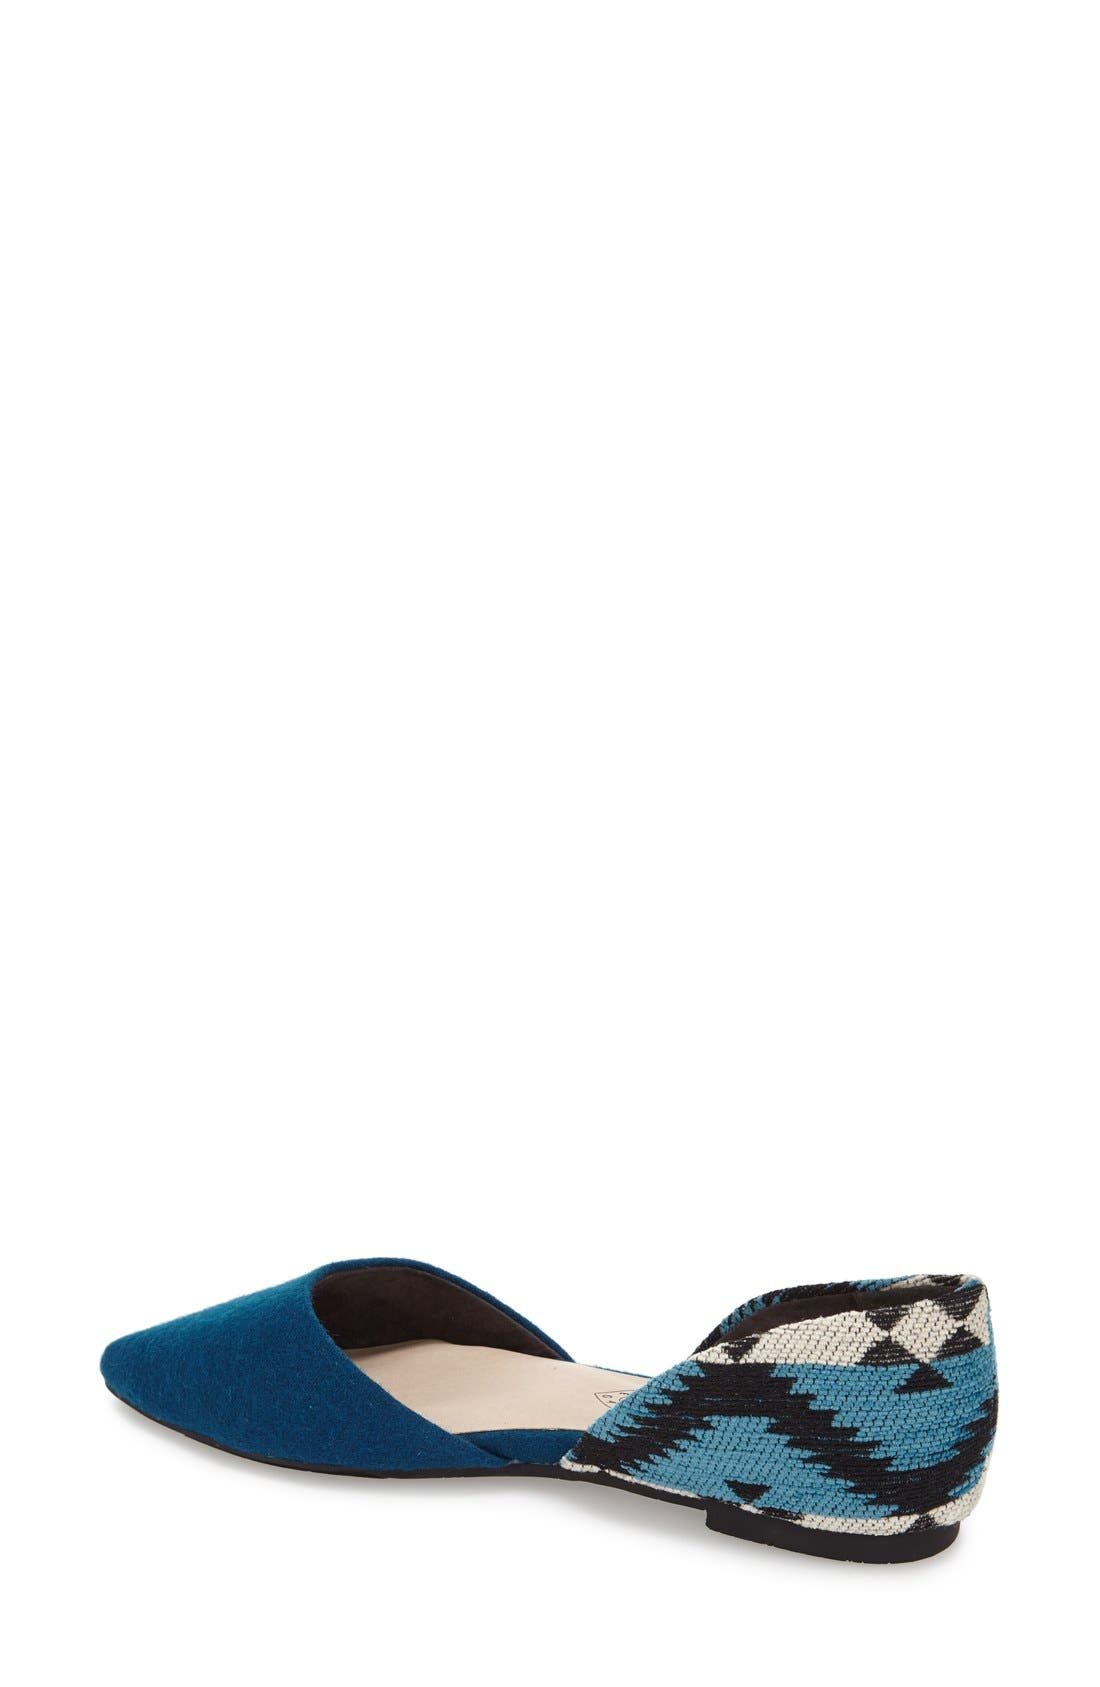 Alternate Image 2  - BC Footwear 'Society' d'Orsay Flat (Women)